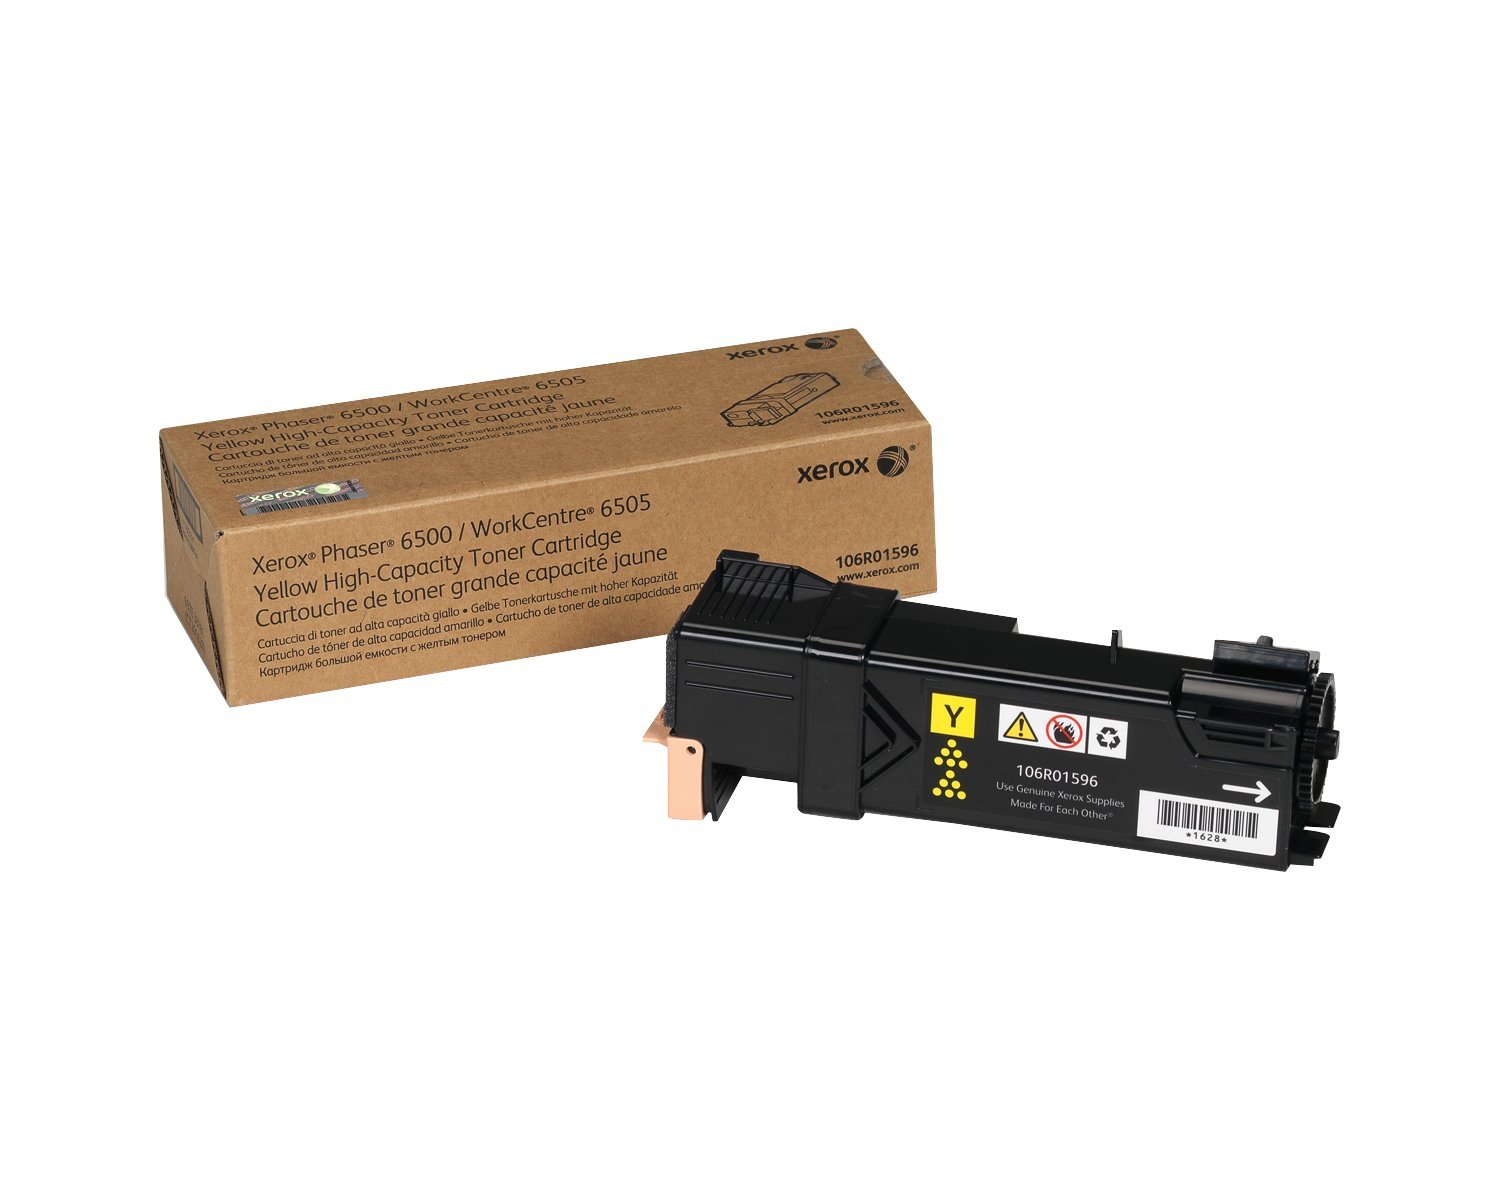 Genuine Xerox Standard Capacity Yellow Toner Cartridge for use with the Xerox WorkCentre 6505/Phaser 6500- Part# 106R01593